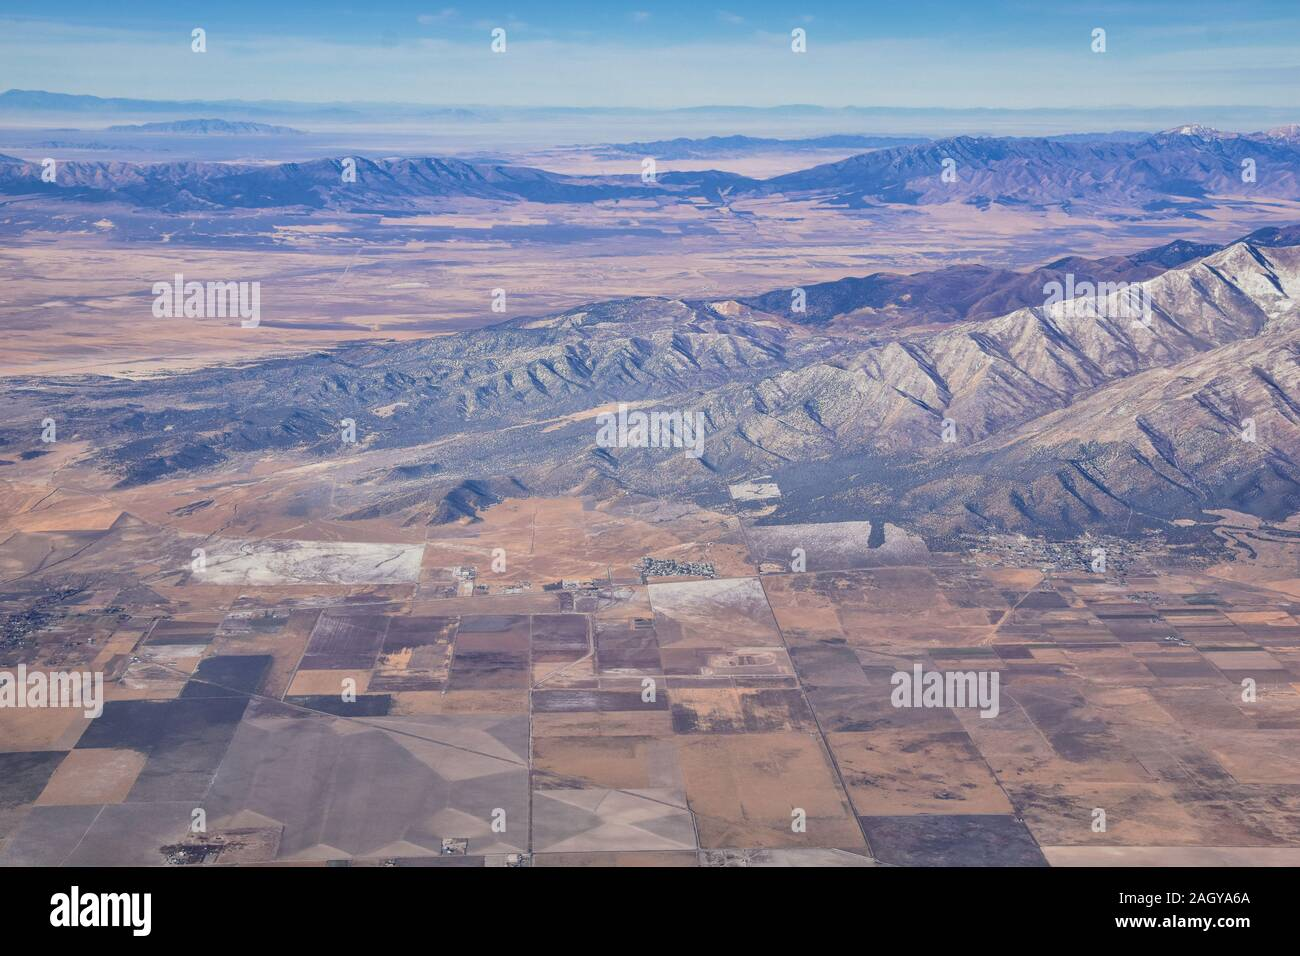 Rocky Mountains, Oquirrh range aerial views, Wasatch Front Rock from airplane. South Jordan, West Valley, Magna and Herriman, by the Great Salt Lake U Stock Photo